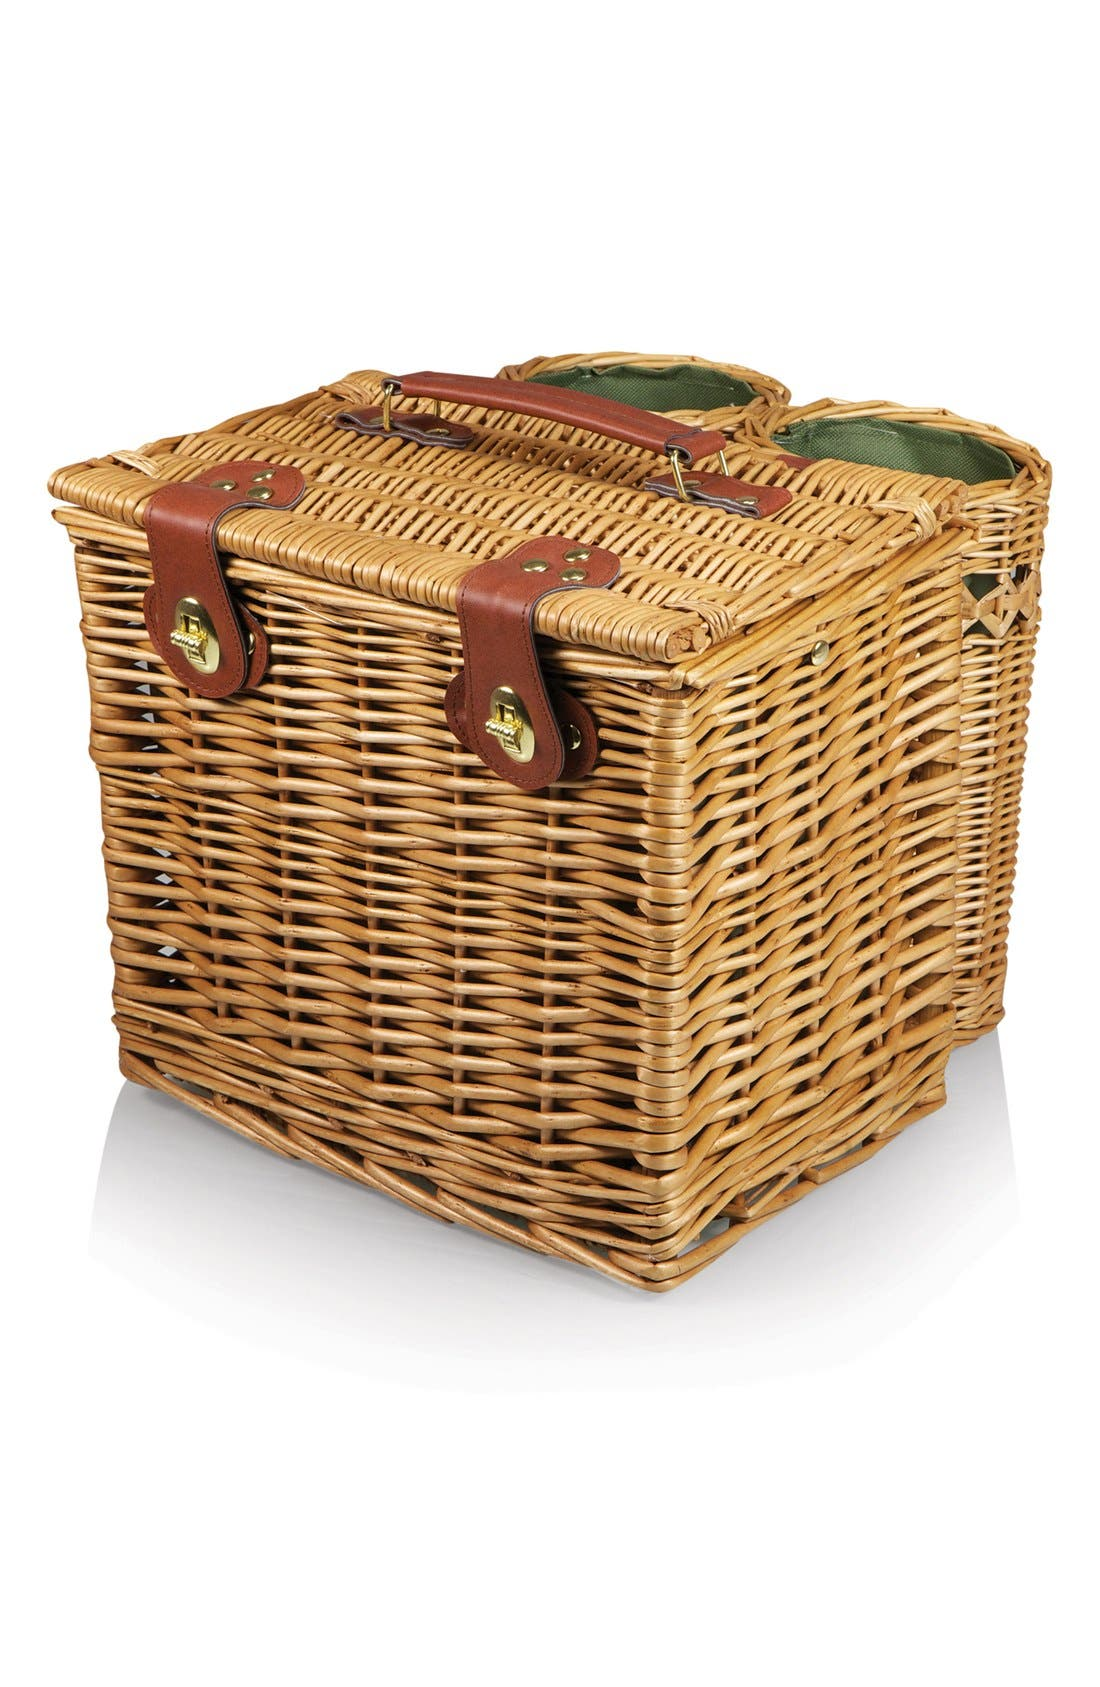 'Vino' Wine & Cheese Picnic Basket,                             Alternate thumbnail 3, color,                             Green